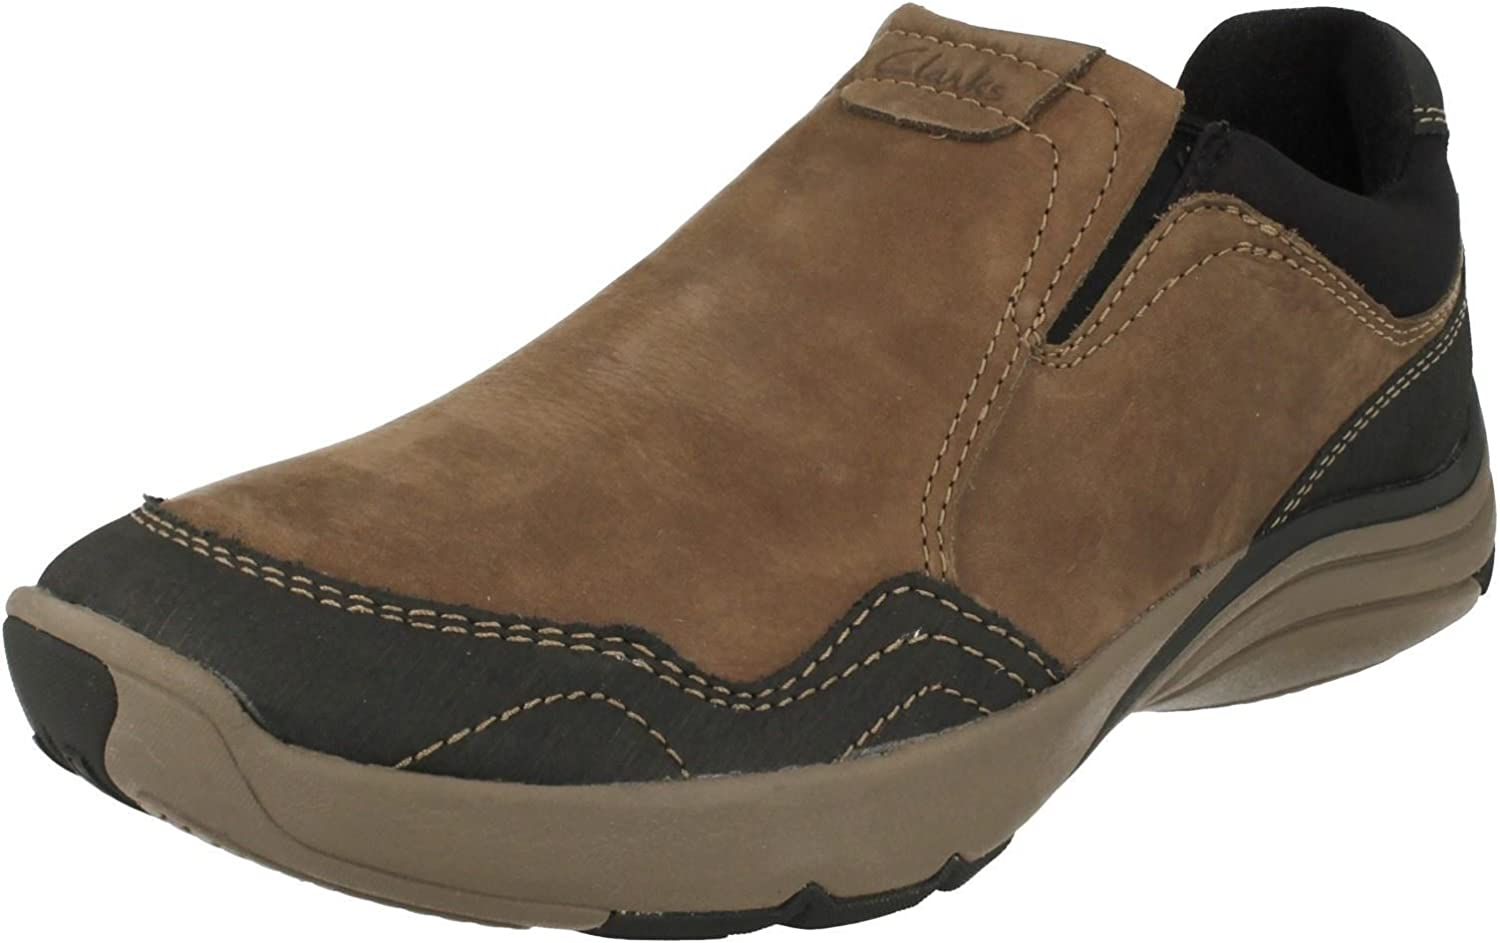 Clarks Mens Active Wear Outdoor Casual shoes Wave Travel